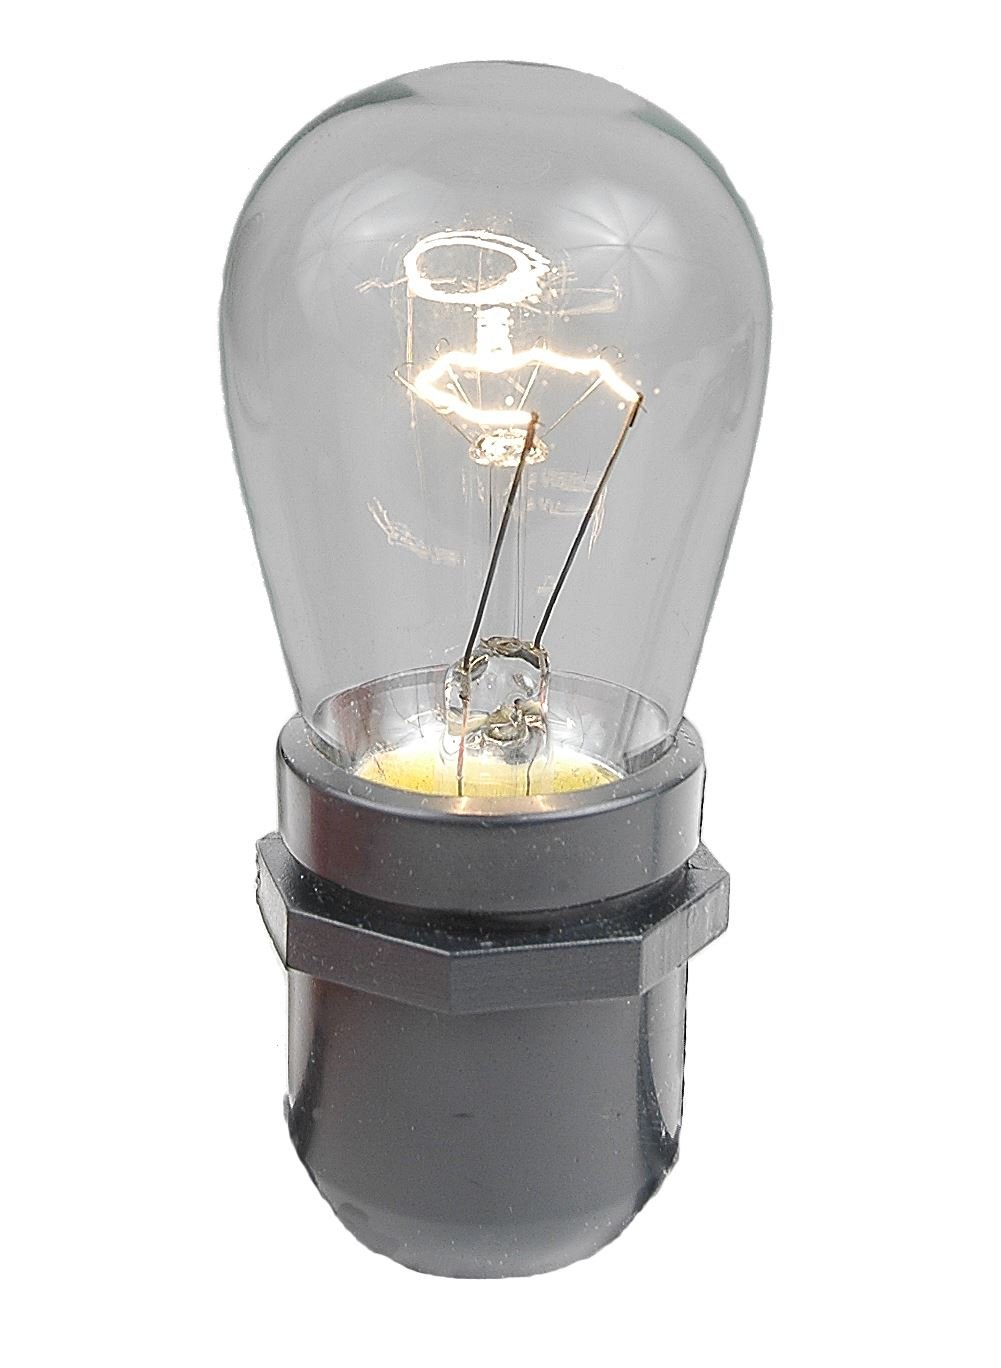 String light company incandescent light bulb pack of 25 - Novelty Lights 25 Pack S14 Outdoor Patio Party Replacement Bulbs Clear E26 Medium Base 11 Watt Incandescent Bulbs Amazon Com